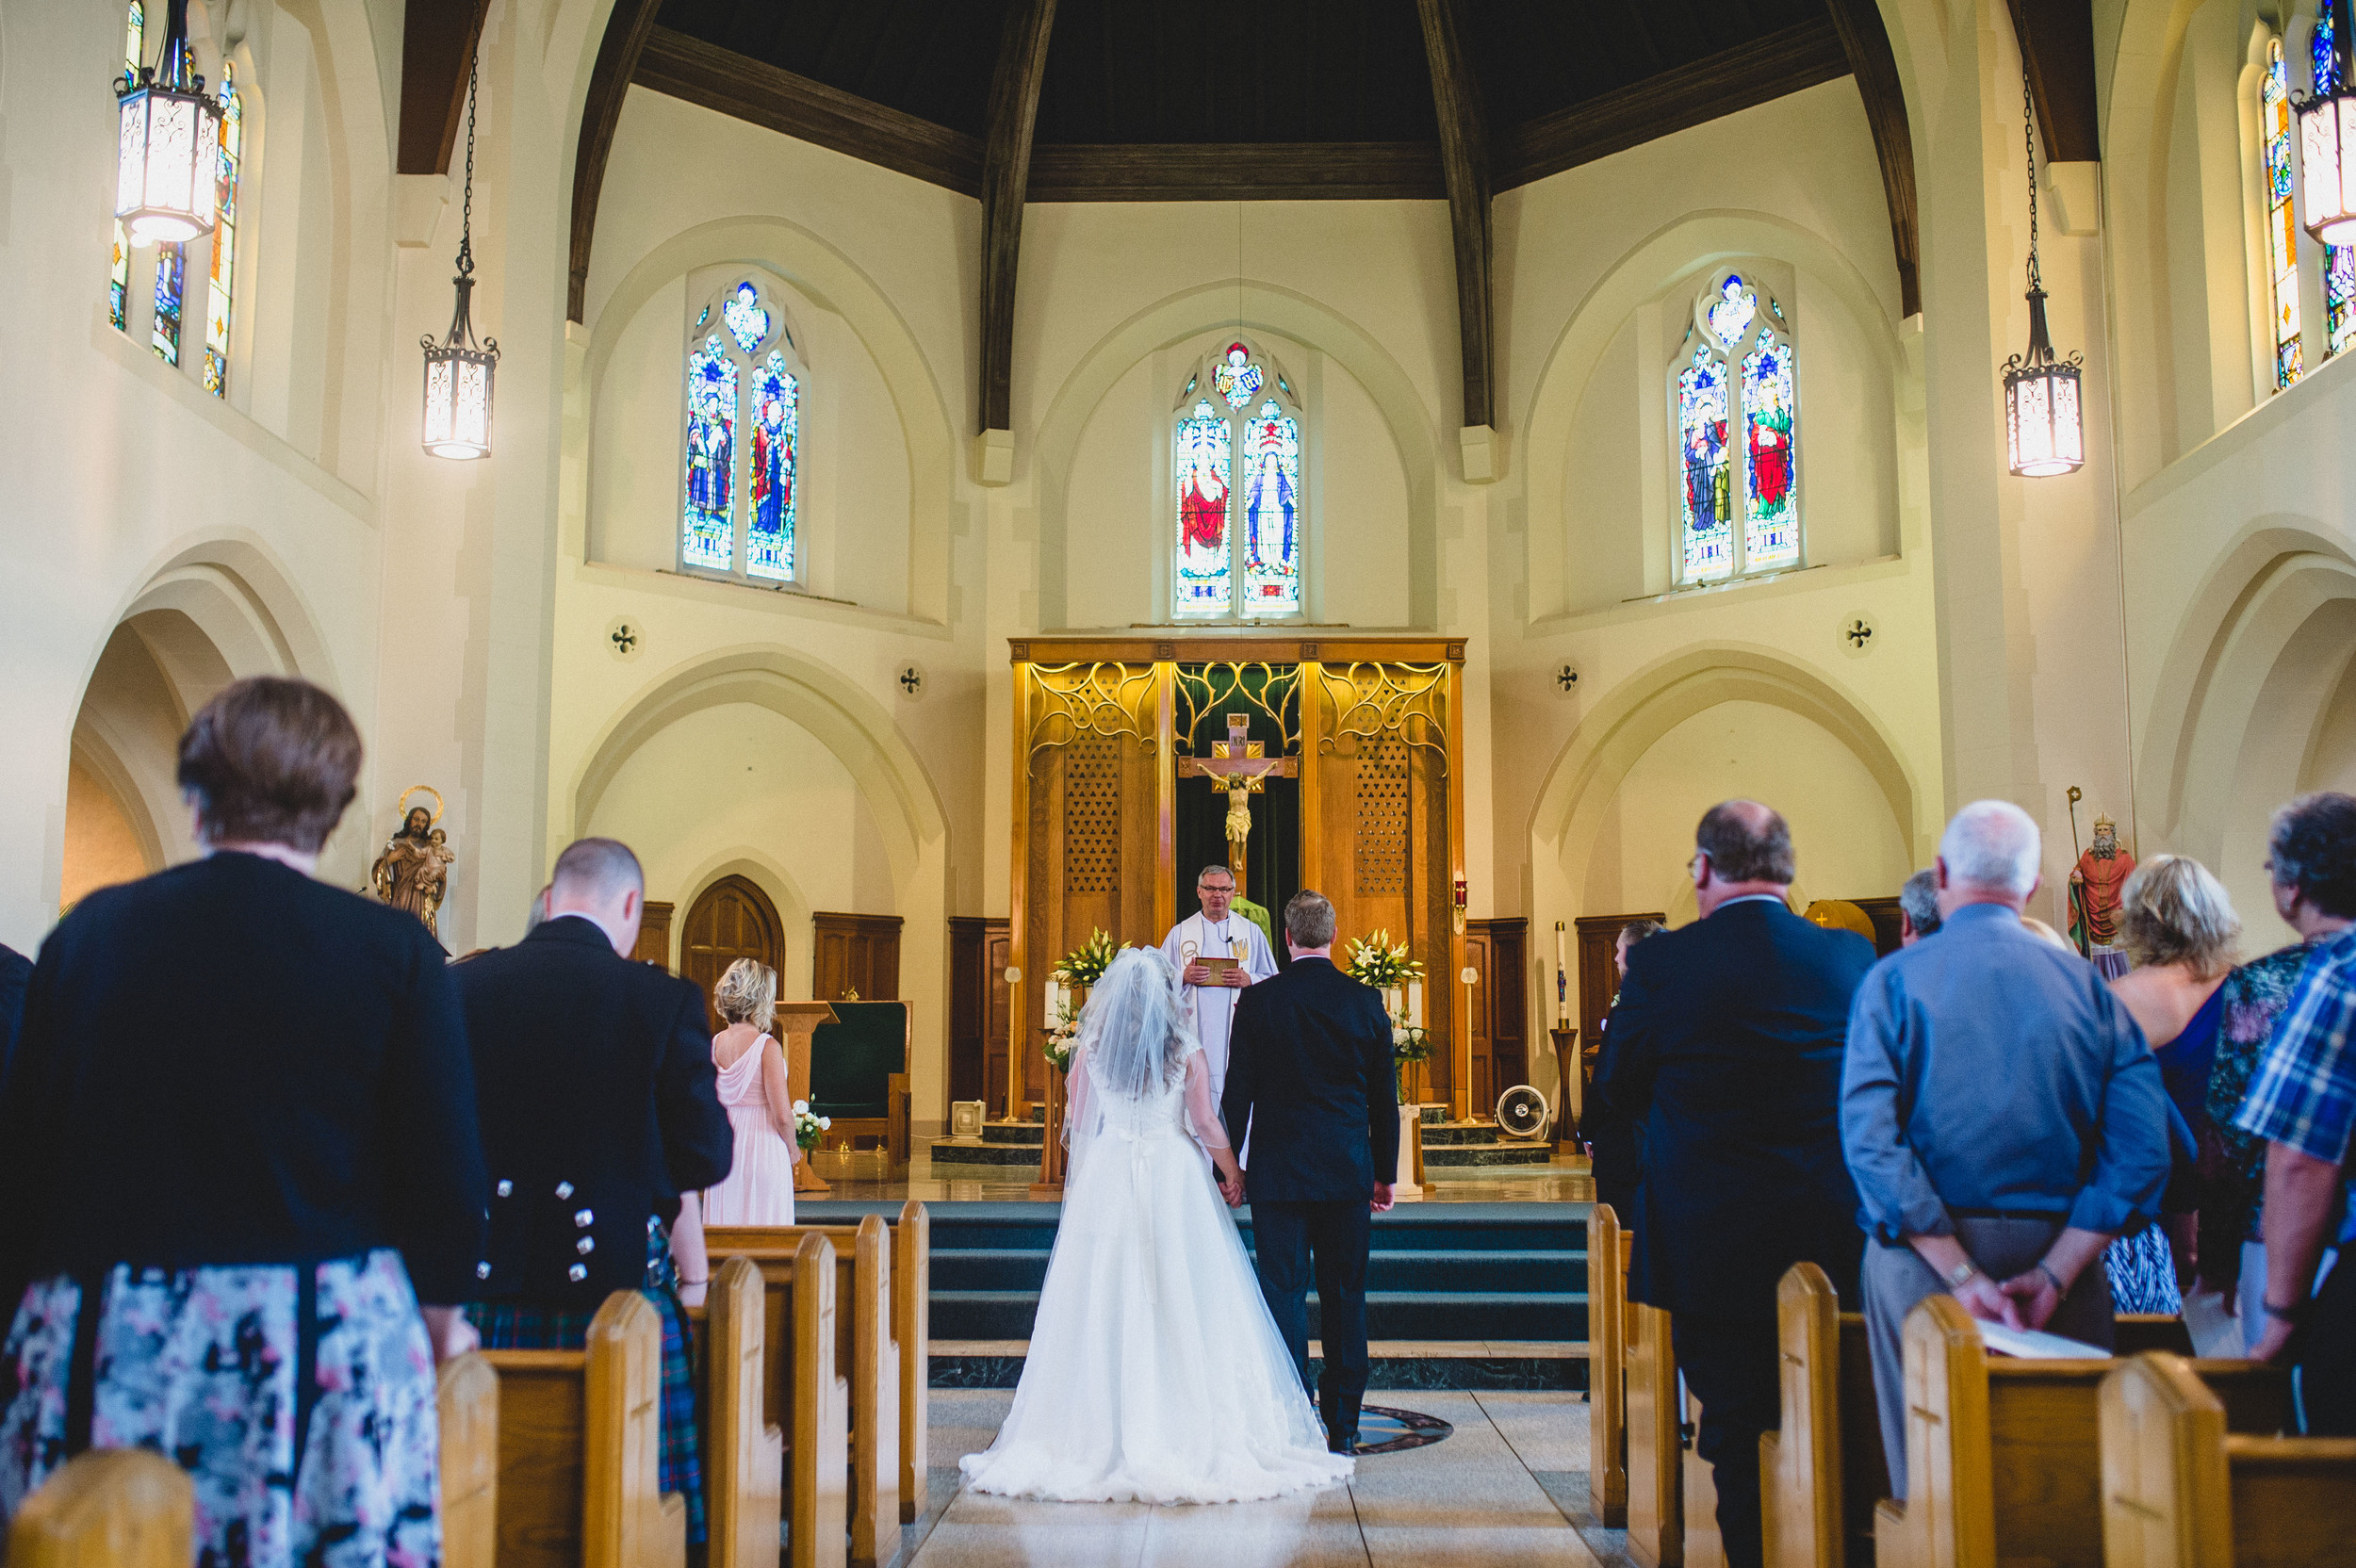 Vancouver St Augustine 's Church wedding photographer edward lai photography-36.jpg